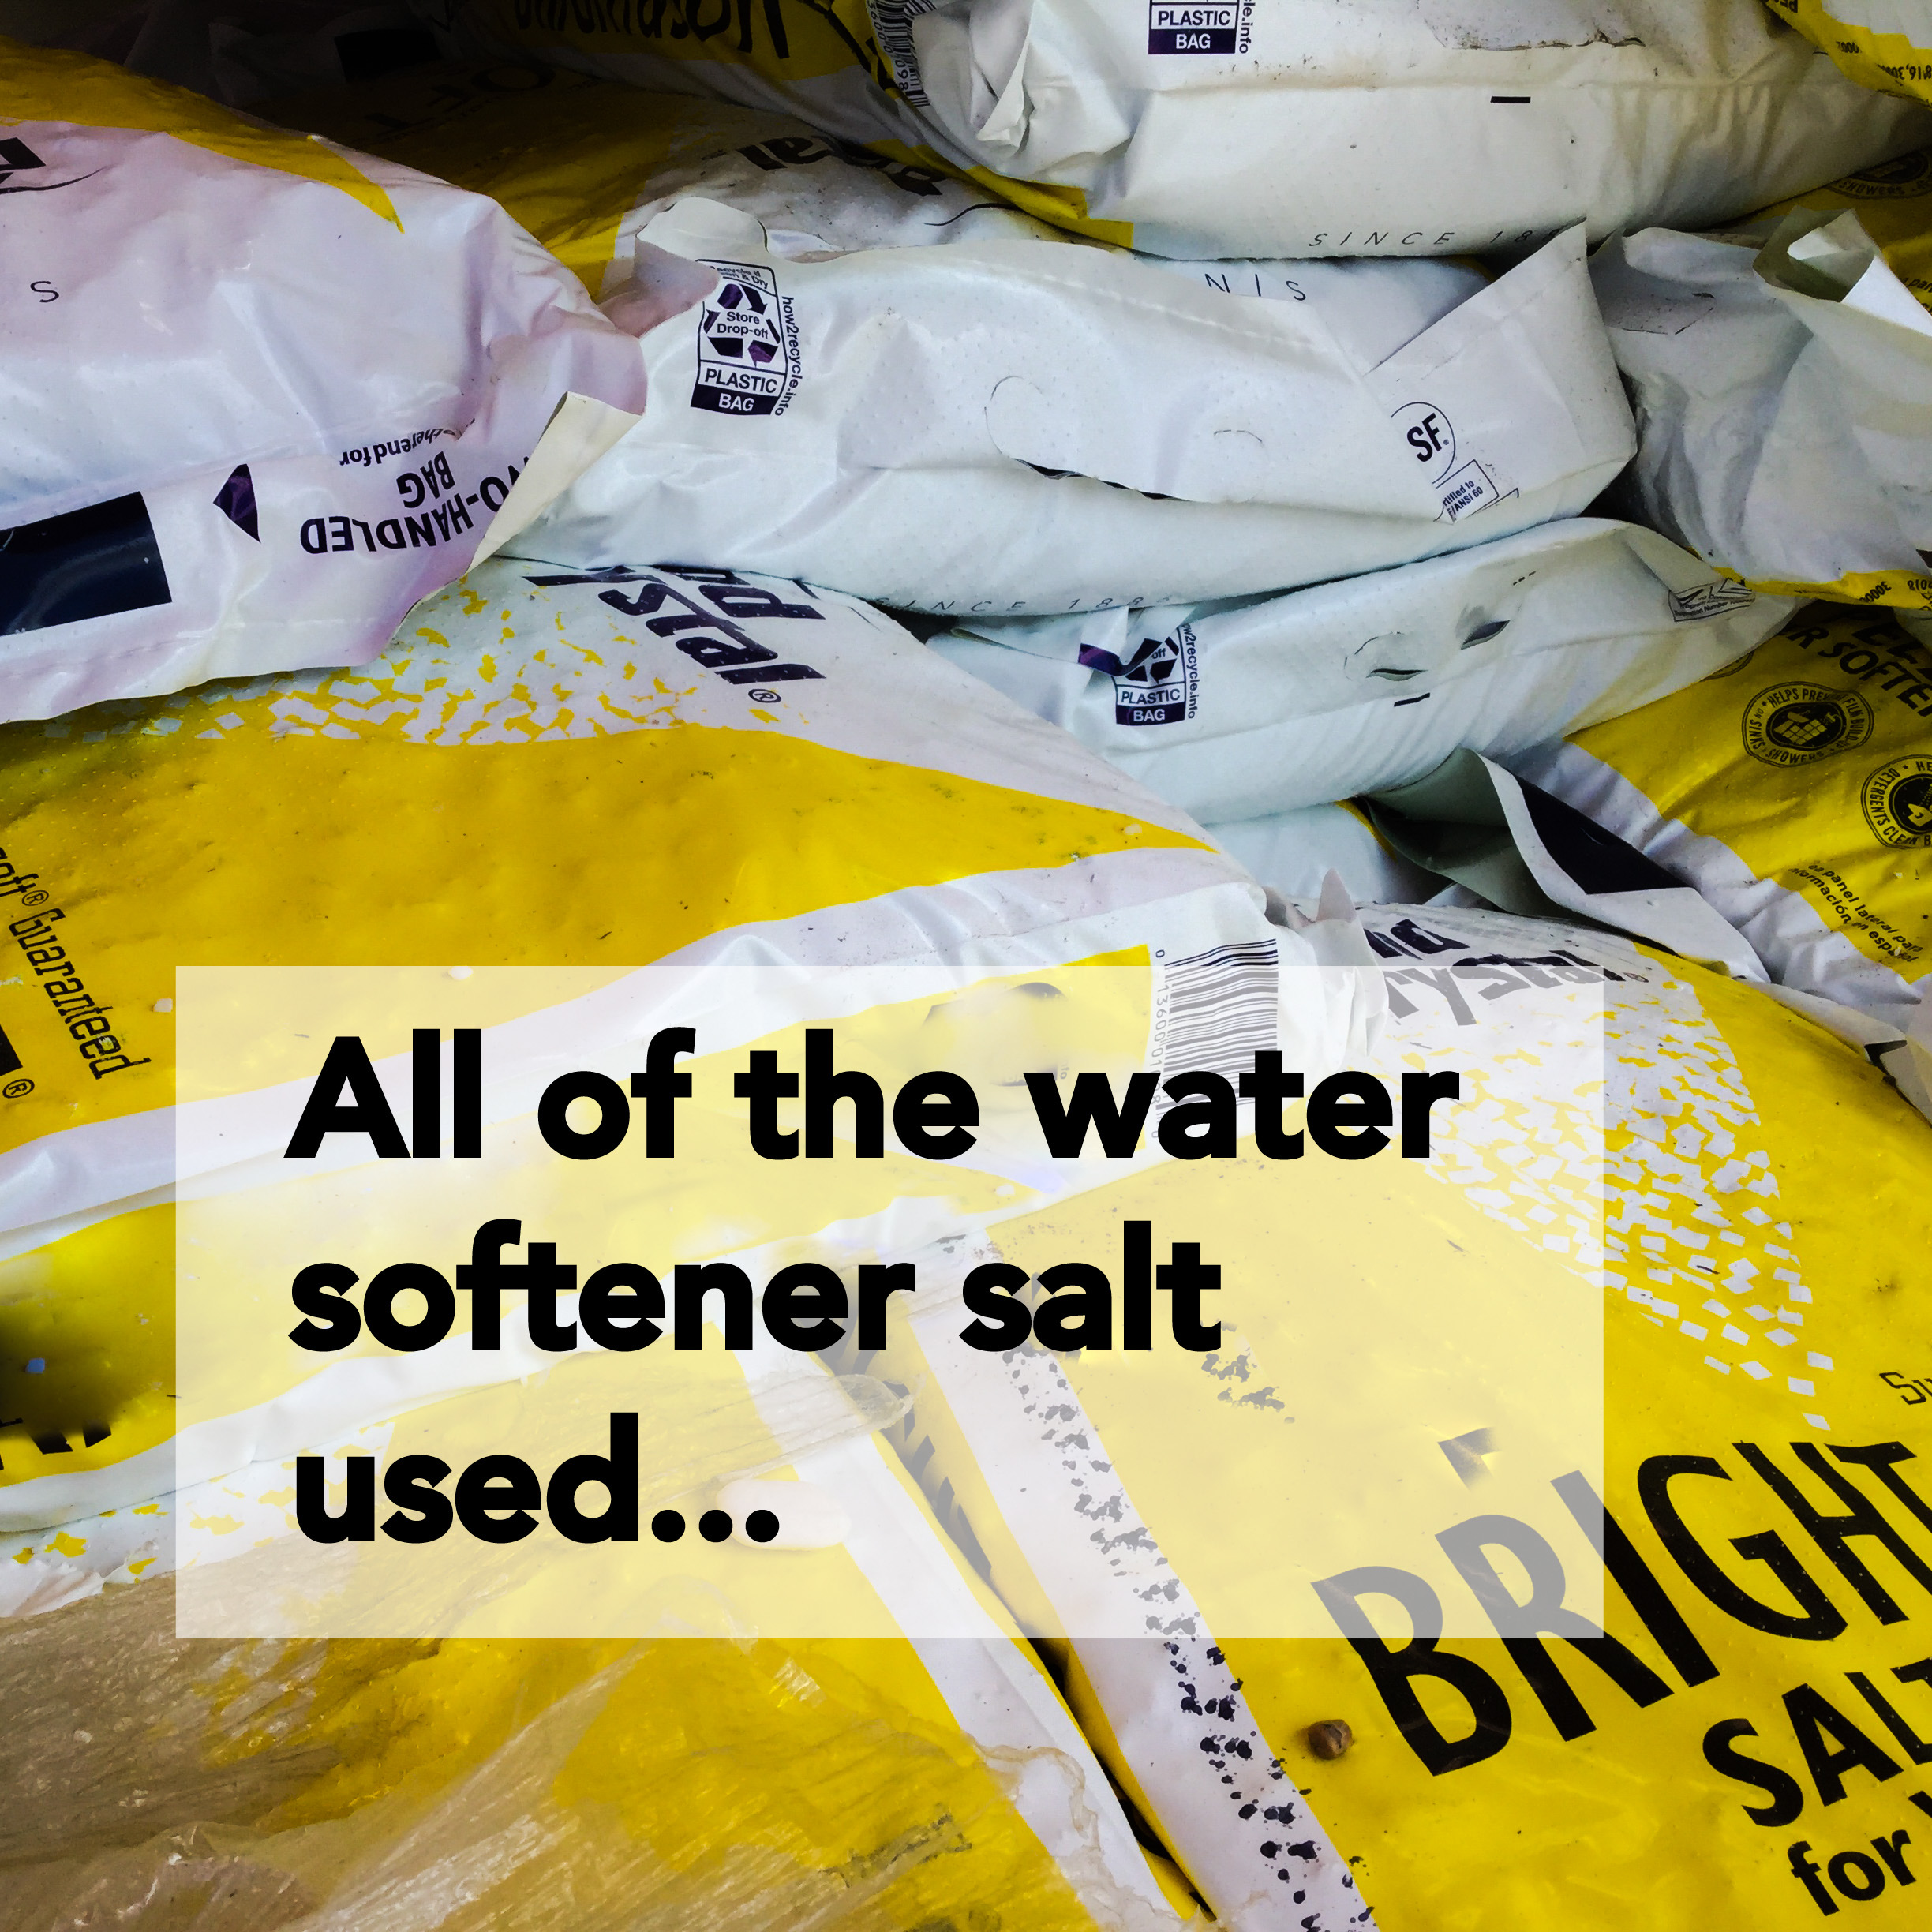 all of the water softener salt used...